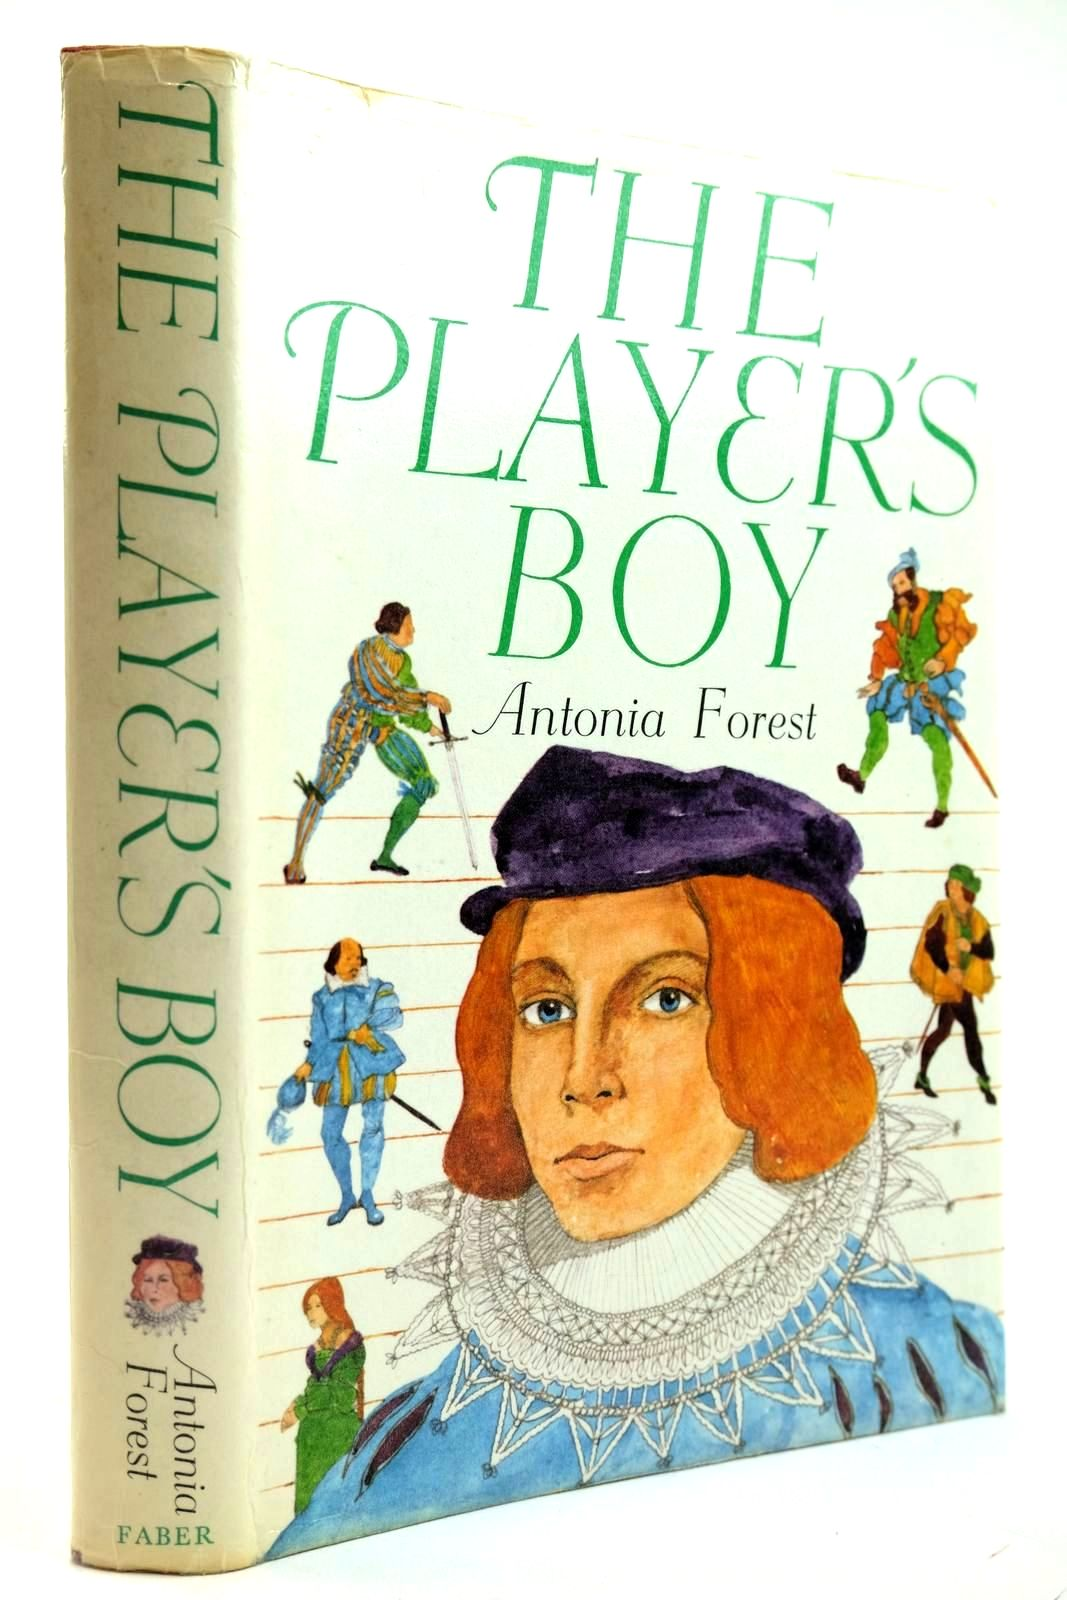 Photo of THE PLAYER'S BOY written by Forest, Antonia published by Faber & Faber Limited (STOCK CODE: 2132019)  for sale by Stella & Rose's Books